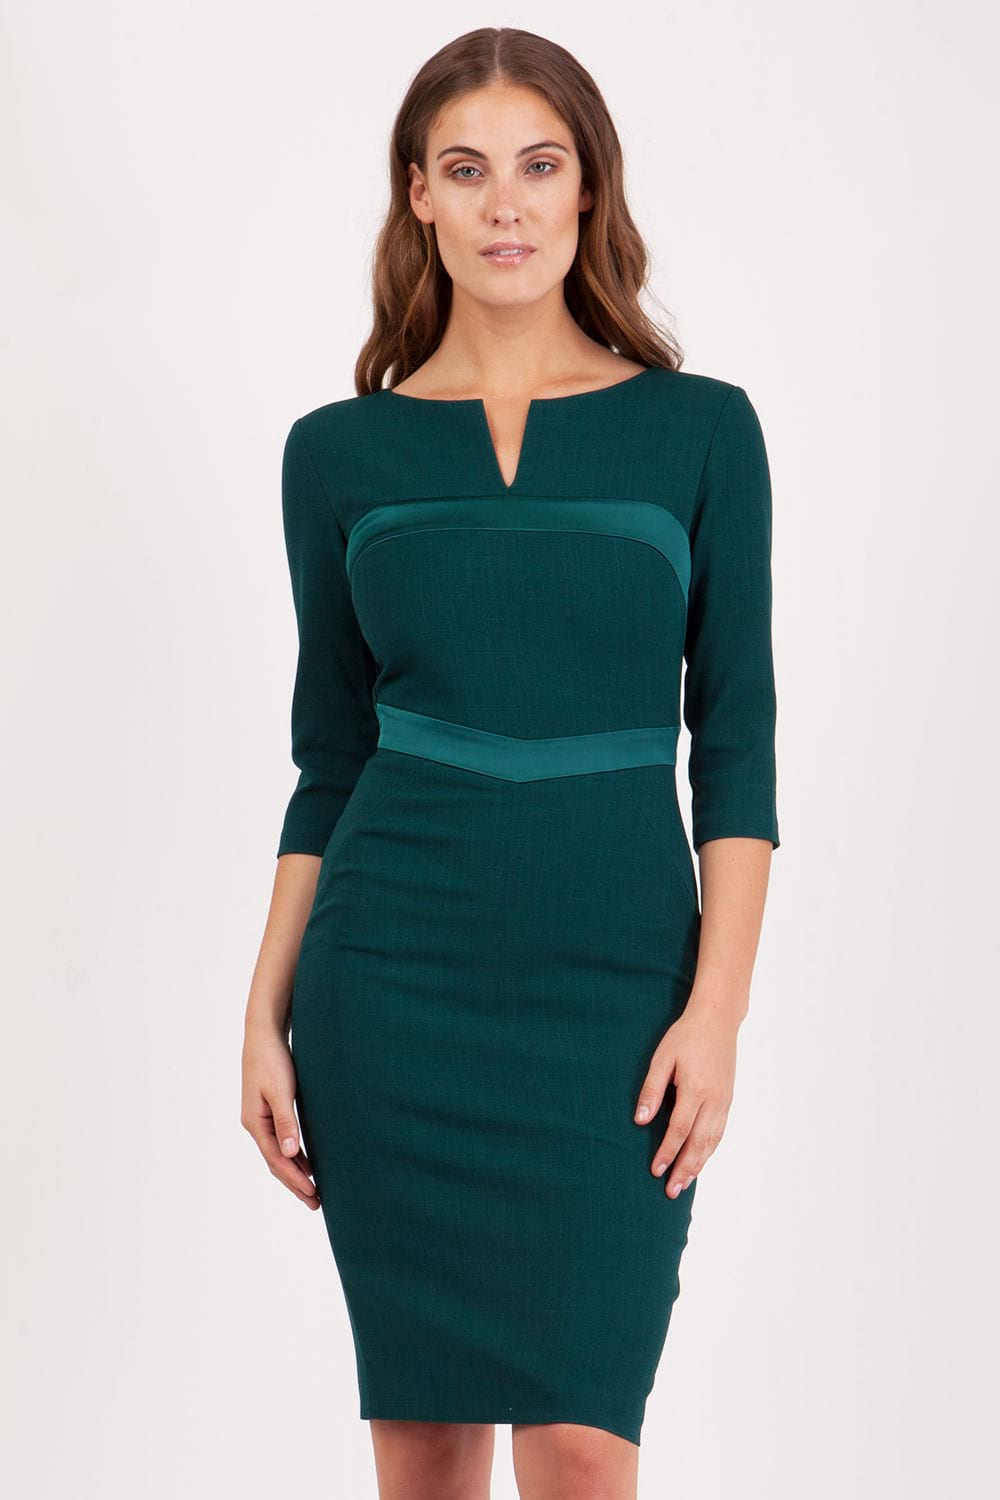 Hybrid Fashion 1083 Yvonne 3/4 Sleeve Pencil Dress